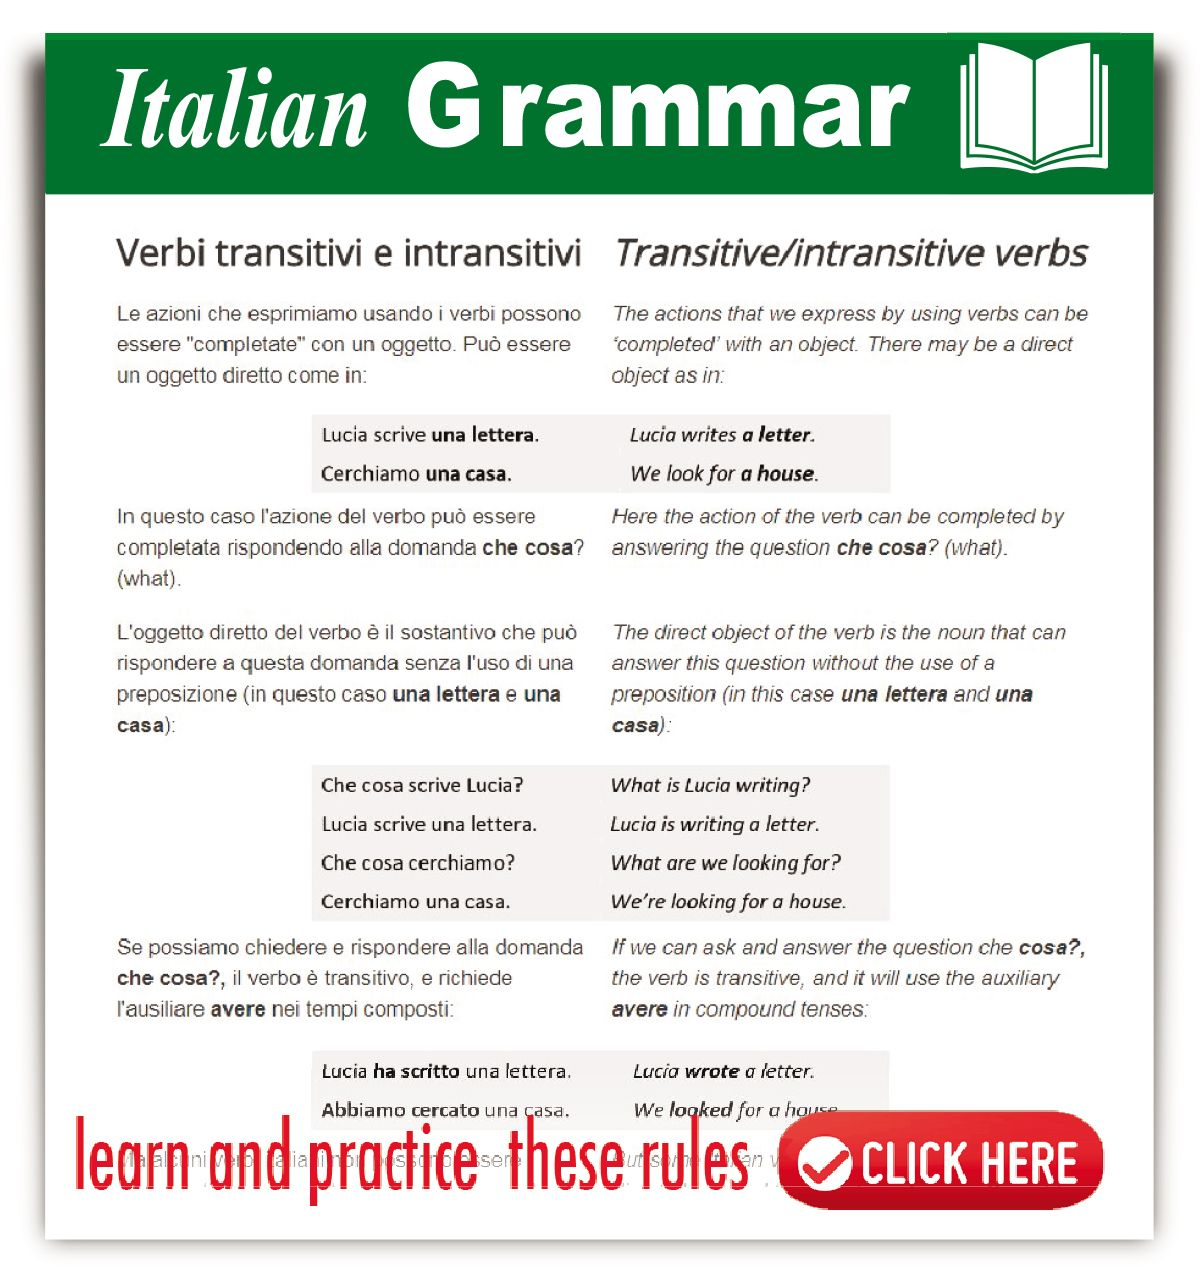 Workbooks transitive and intransitive verbs worksheets : Italian Transitive / Intransitive Verbs - #learnitalian ...